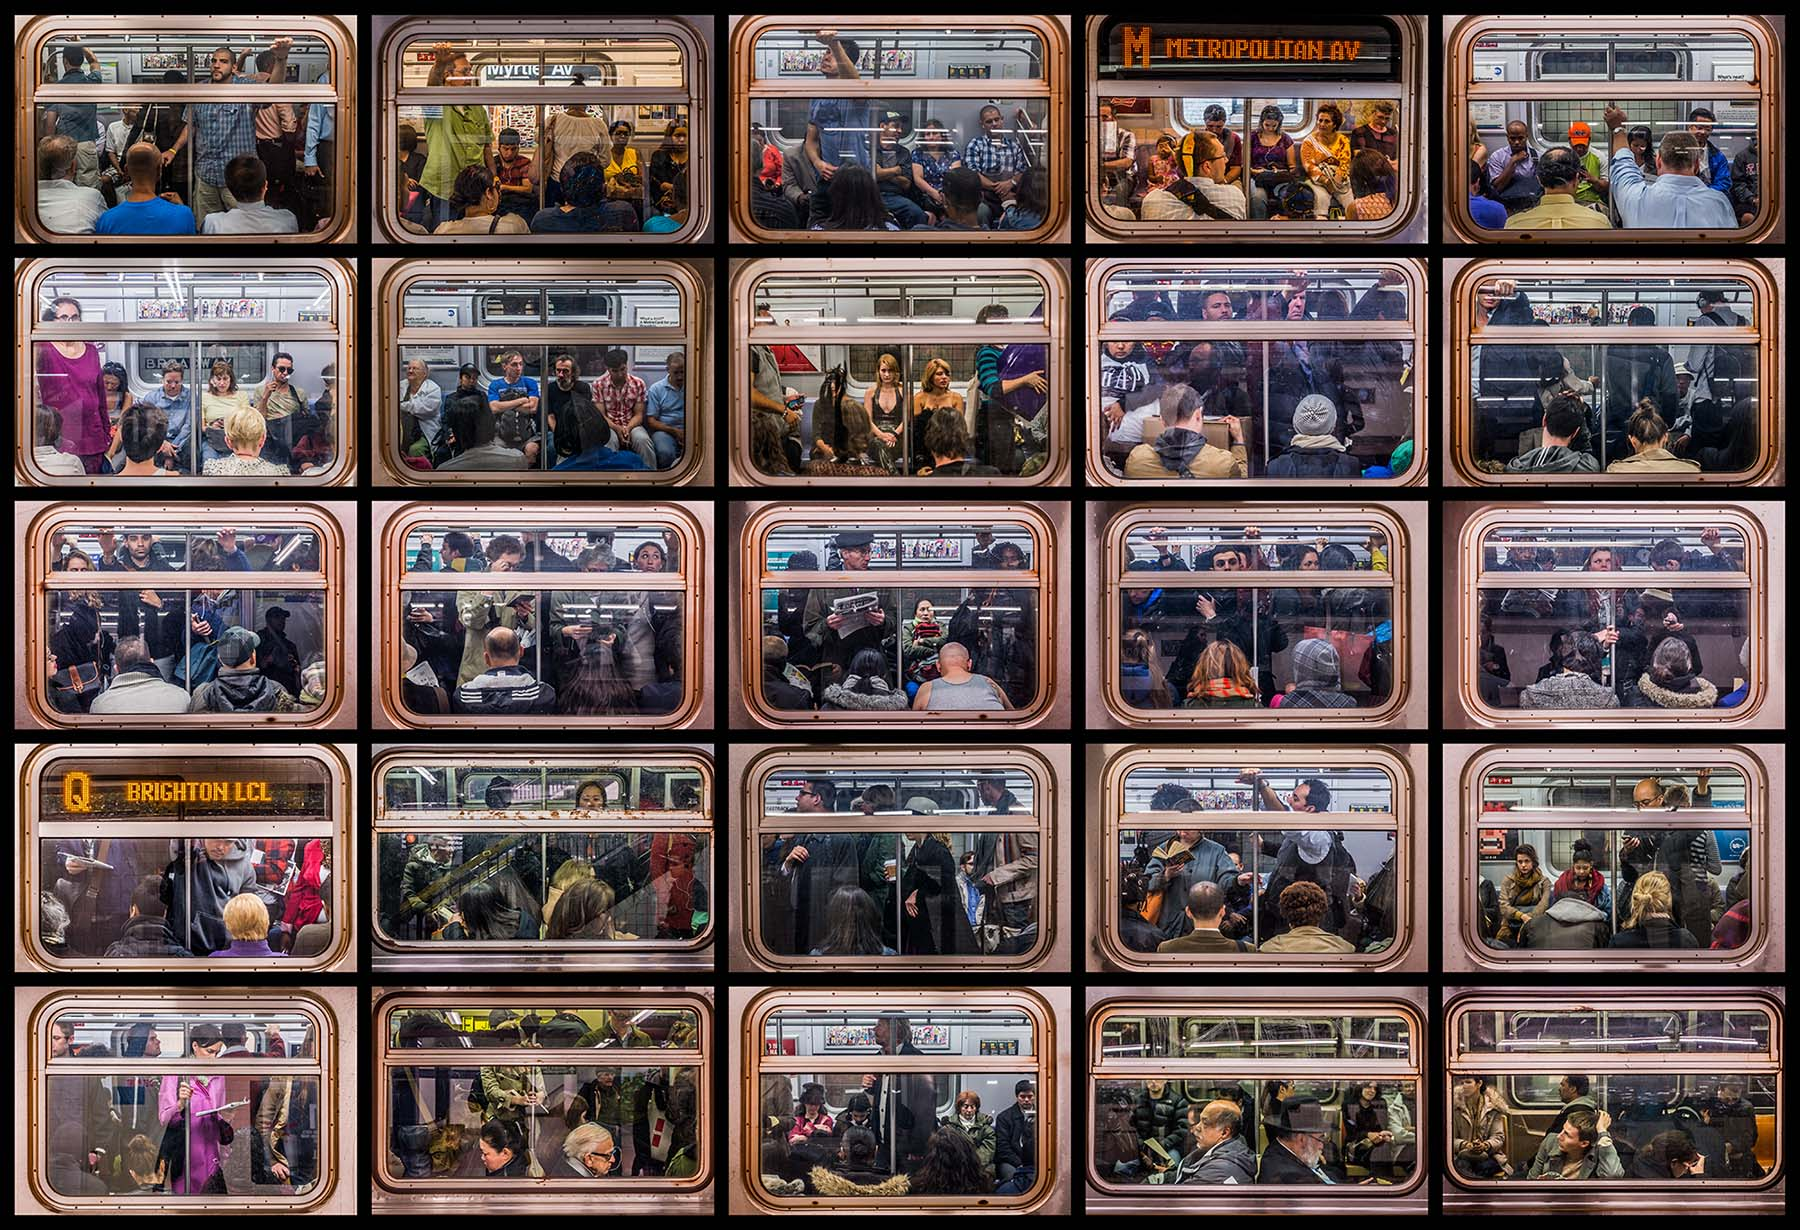 """Train window vignettes, large grid, from """"Sub/Culture."""""""